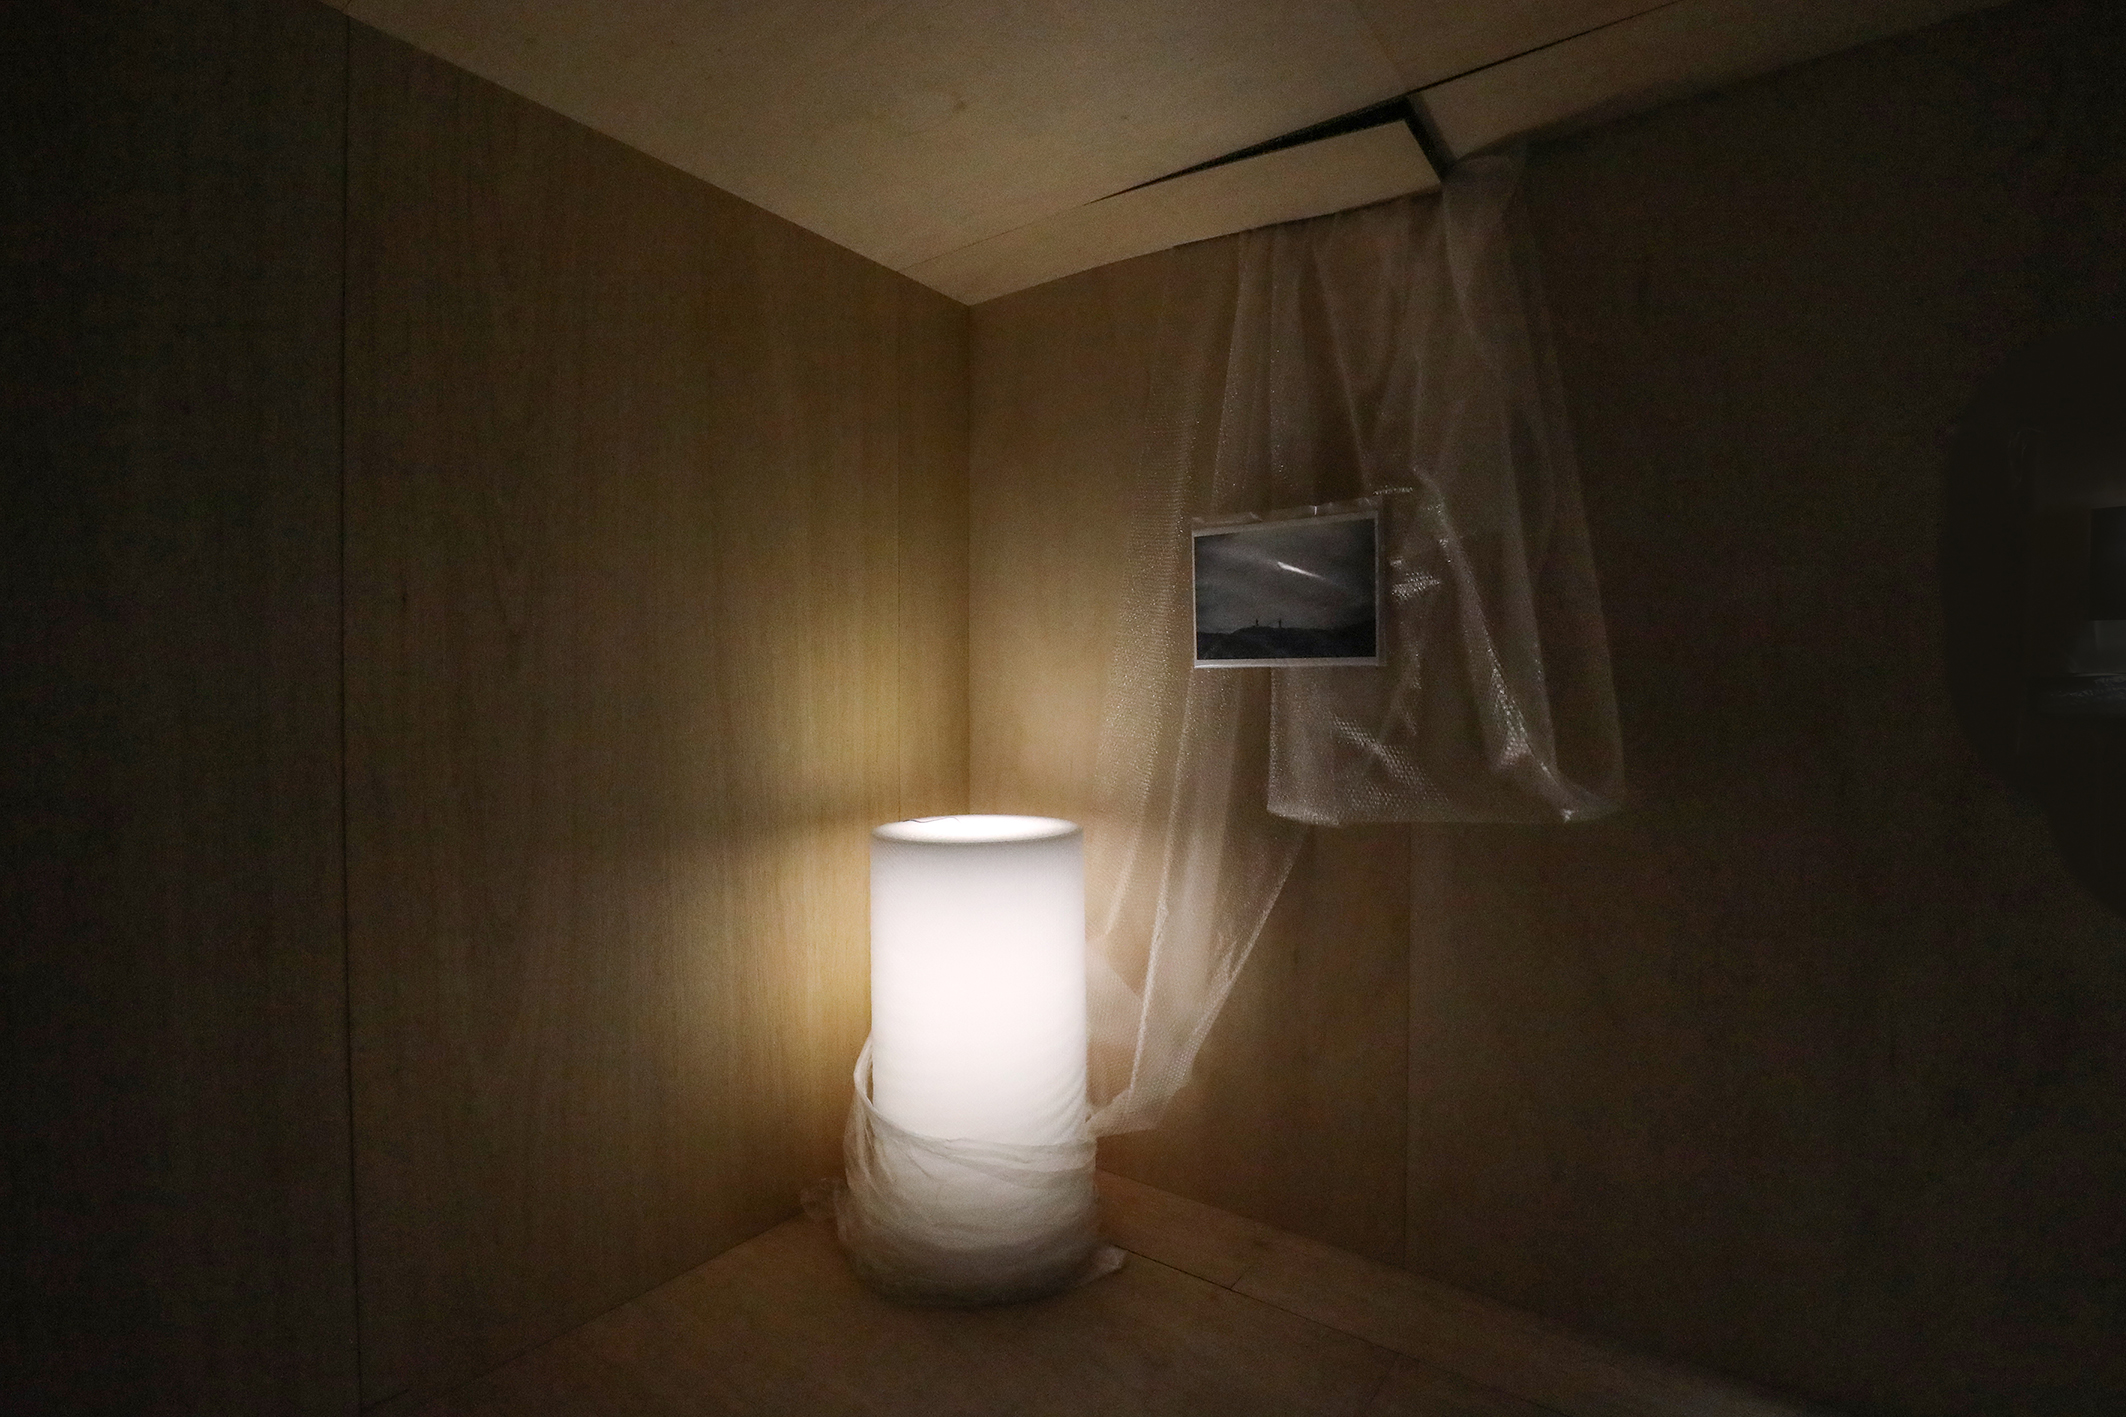 Somewhere Without, Site specific (photography, eraser dust, packaging materials, LED light), Dimensions variable, 2021